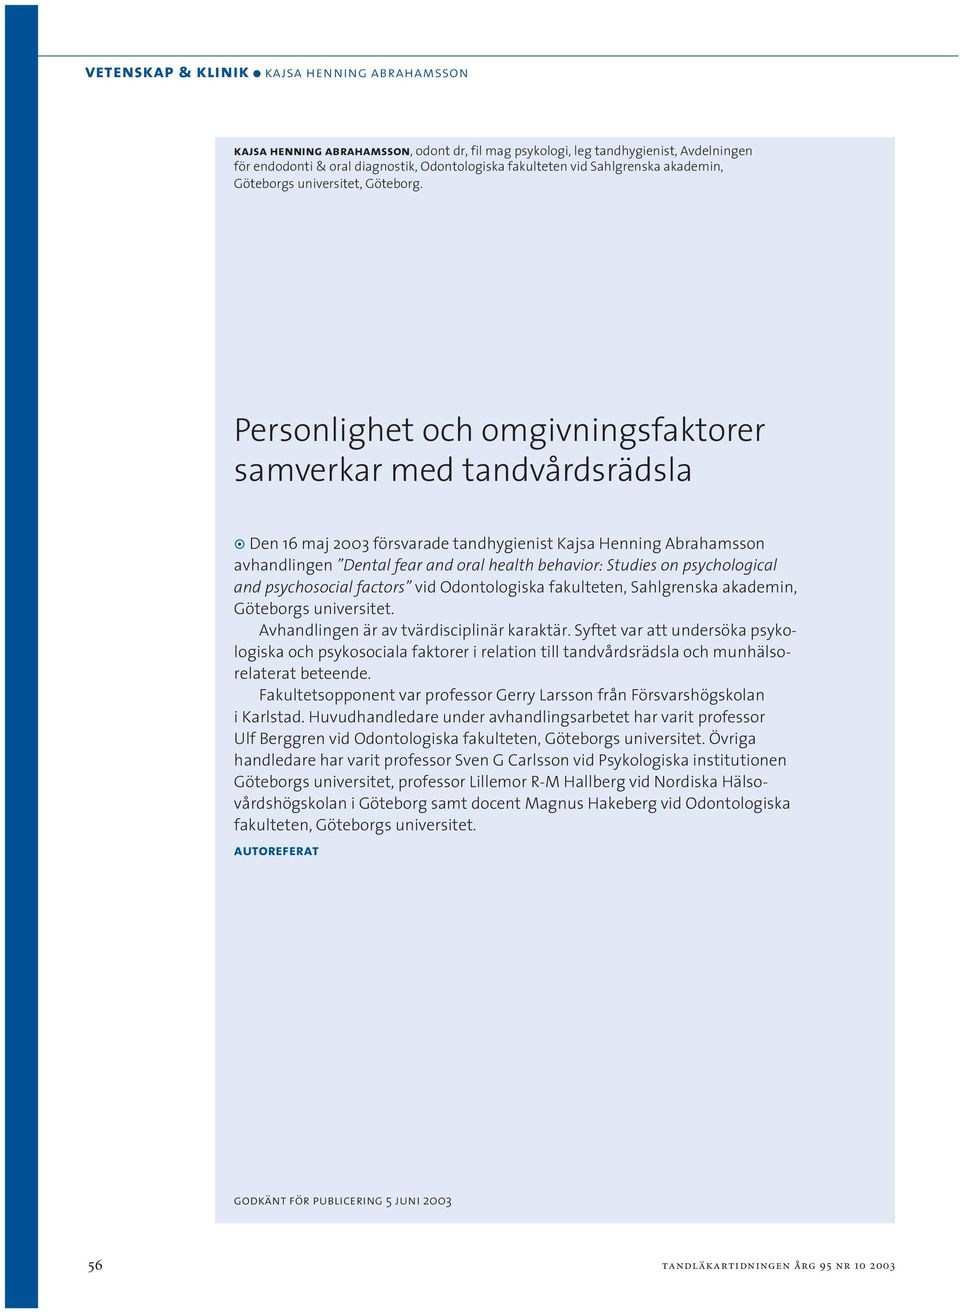 Personlighet och omgivningsfaktorer samverkar med tandvårdsrädsla Den 16 maj 2003 försvarade tandhygienist Kajsa Henning Abrahamsson avhandlingen Dental fear and oral health behavior: Studies on